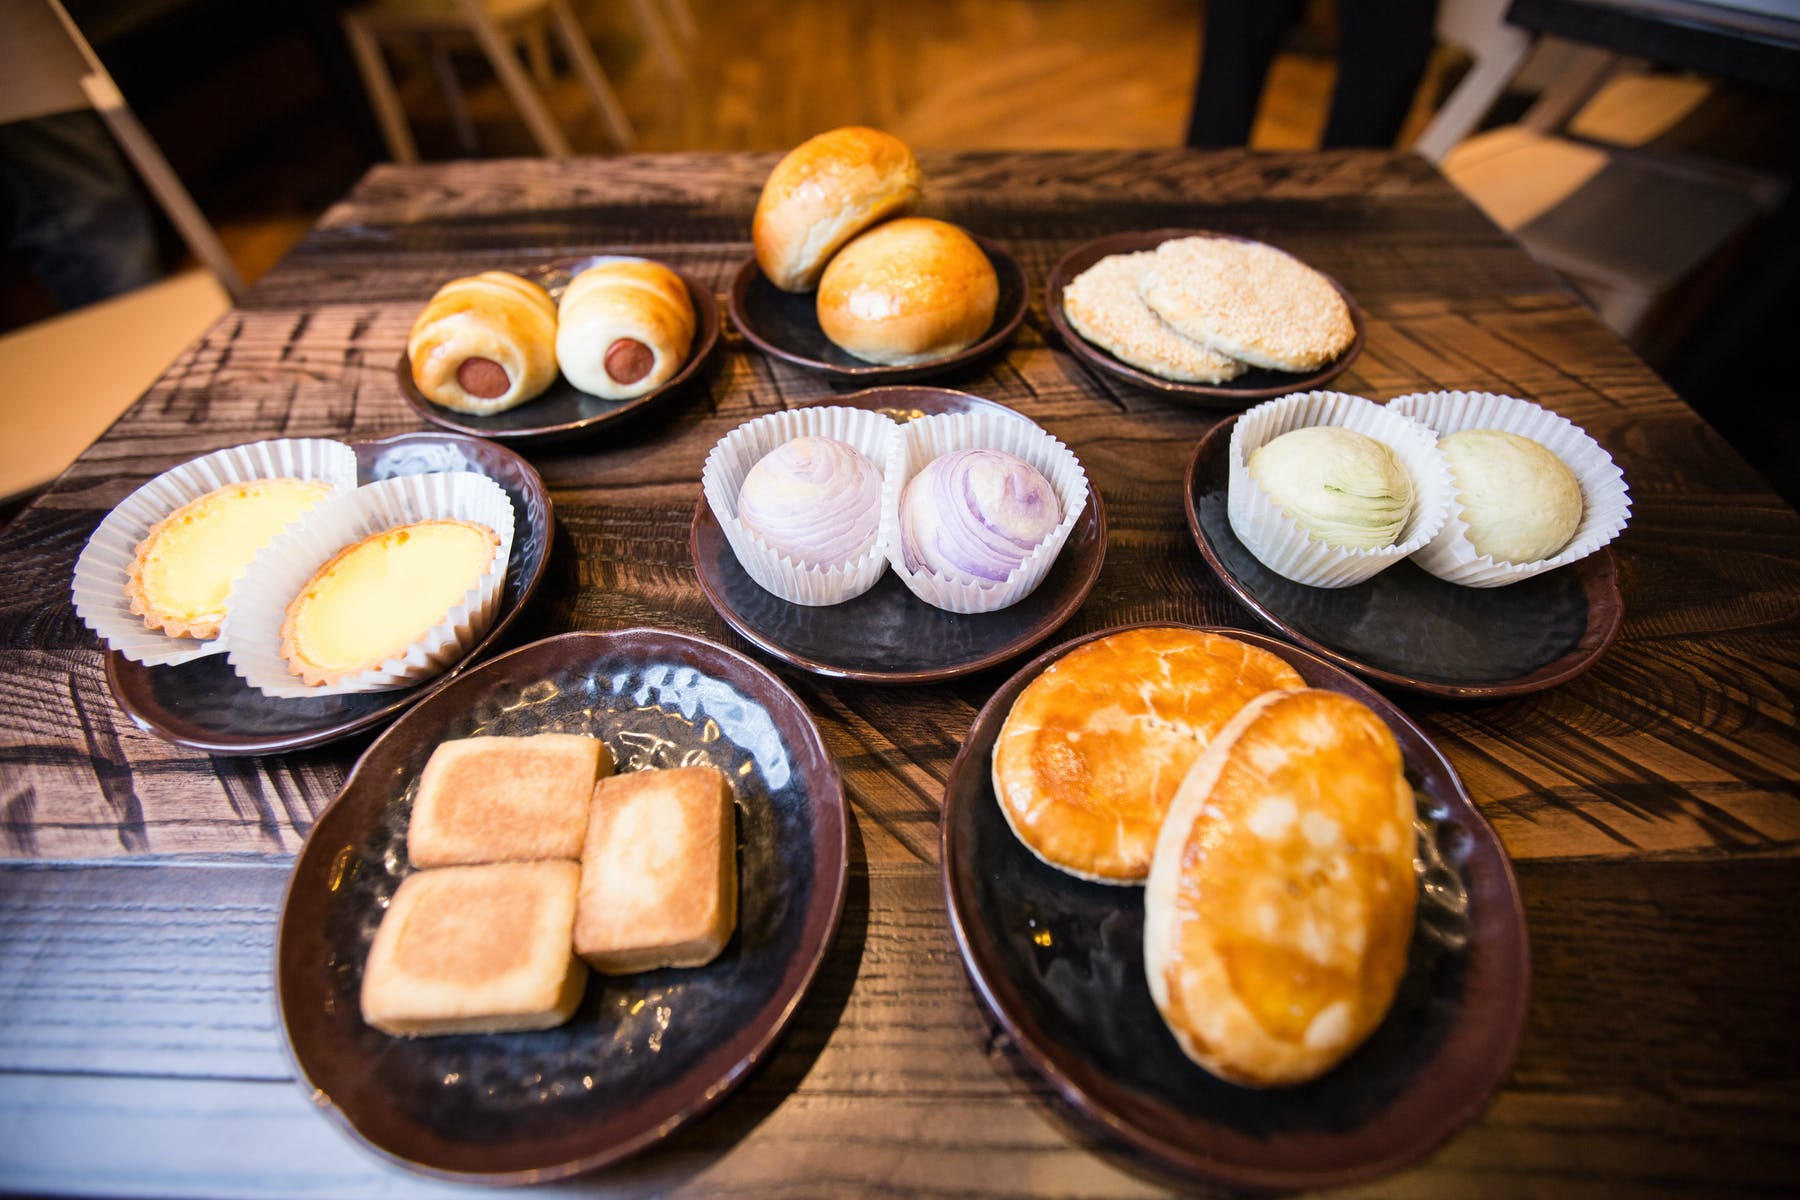 an array of plates topped with different types of food